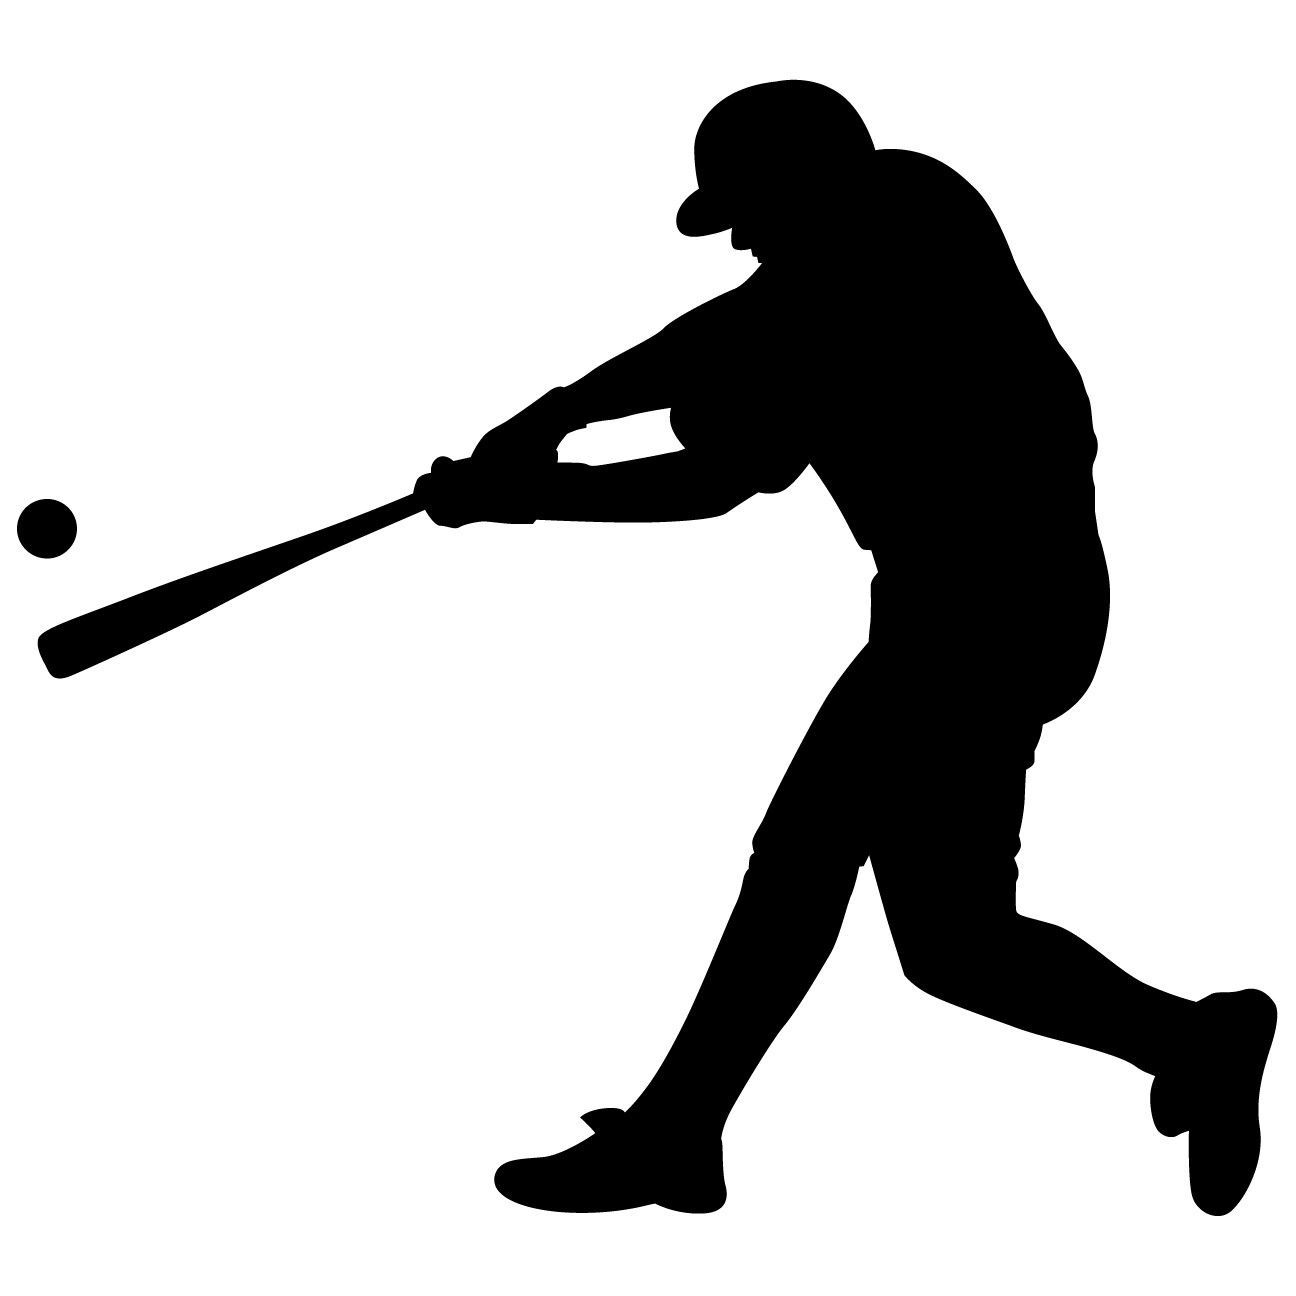 1296x1296 Baseball Batter Wall Decal Sticker 43 Baseball Wall, Wall Decal